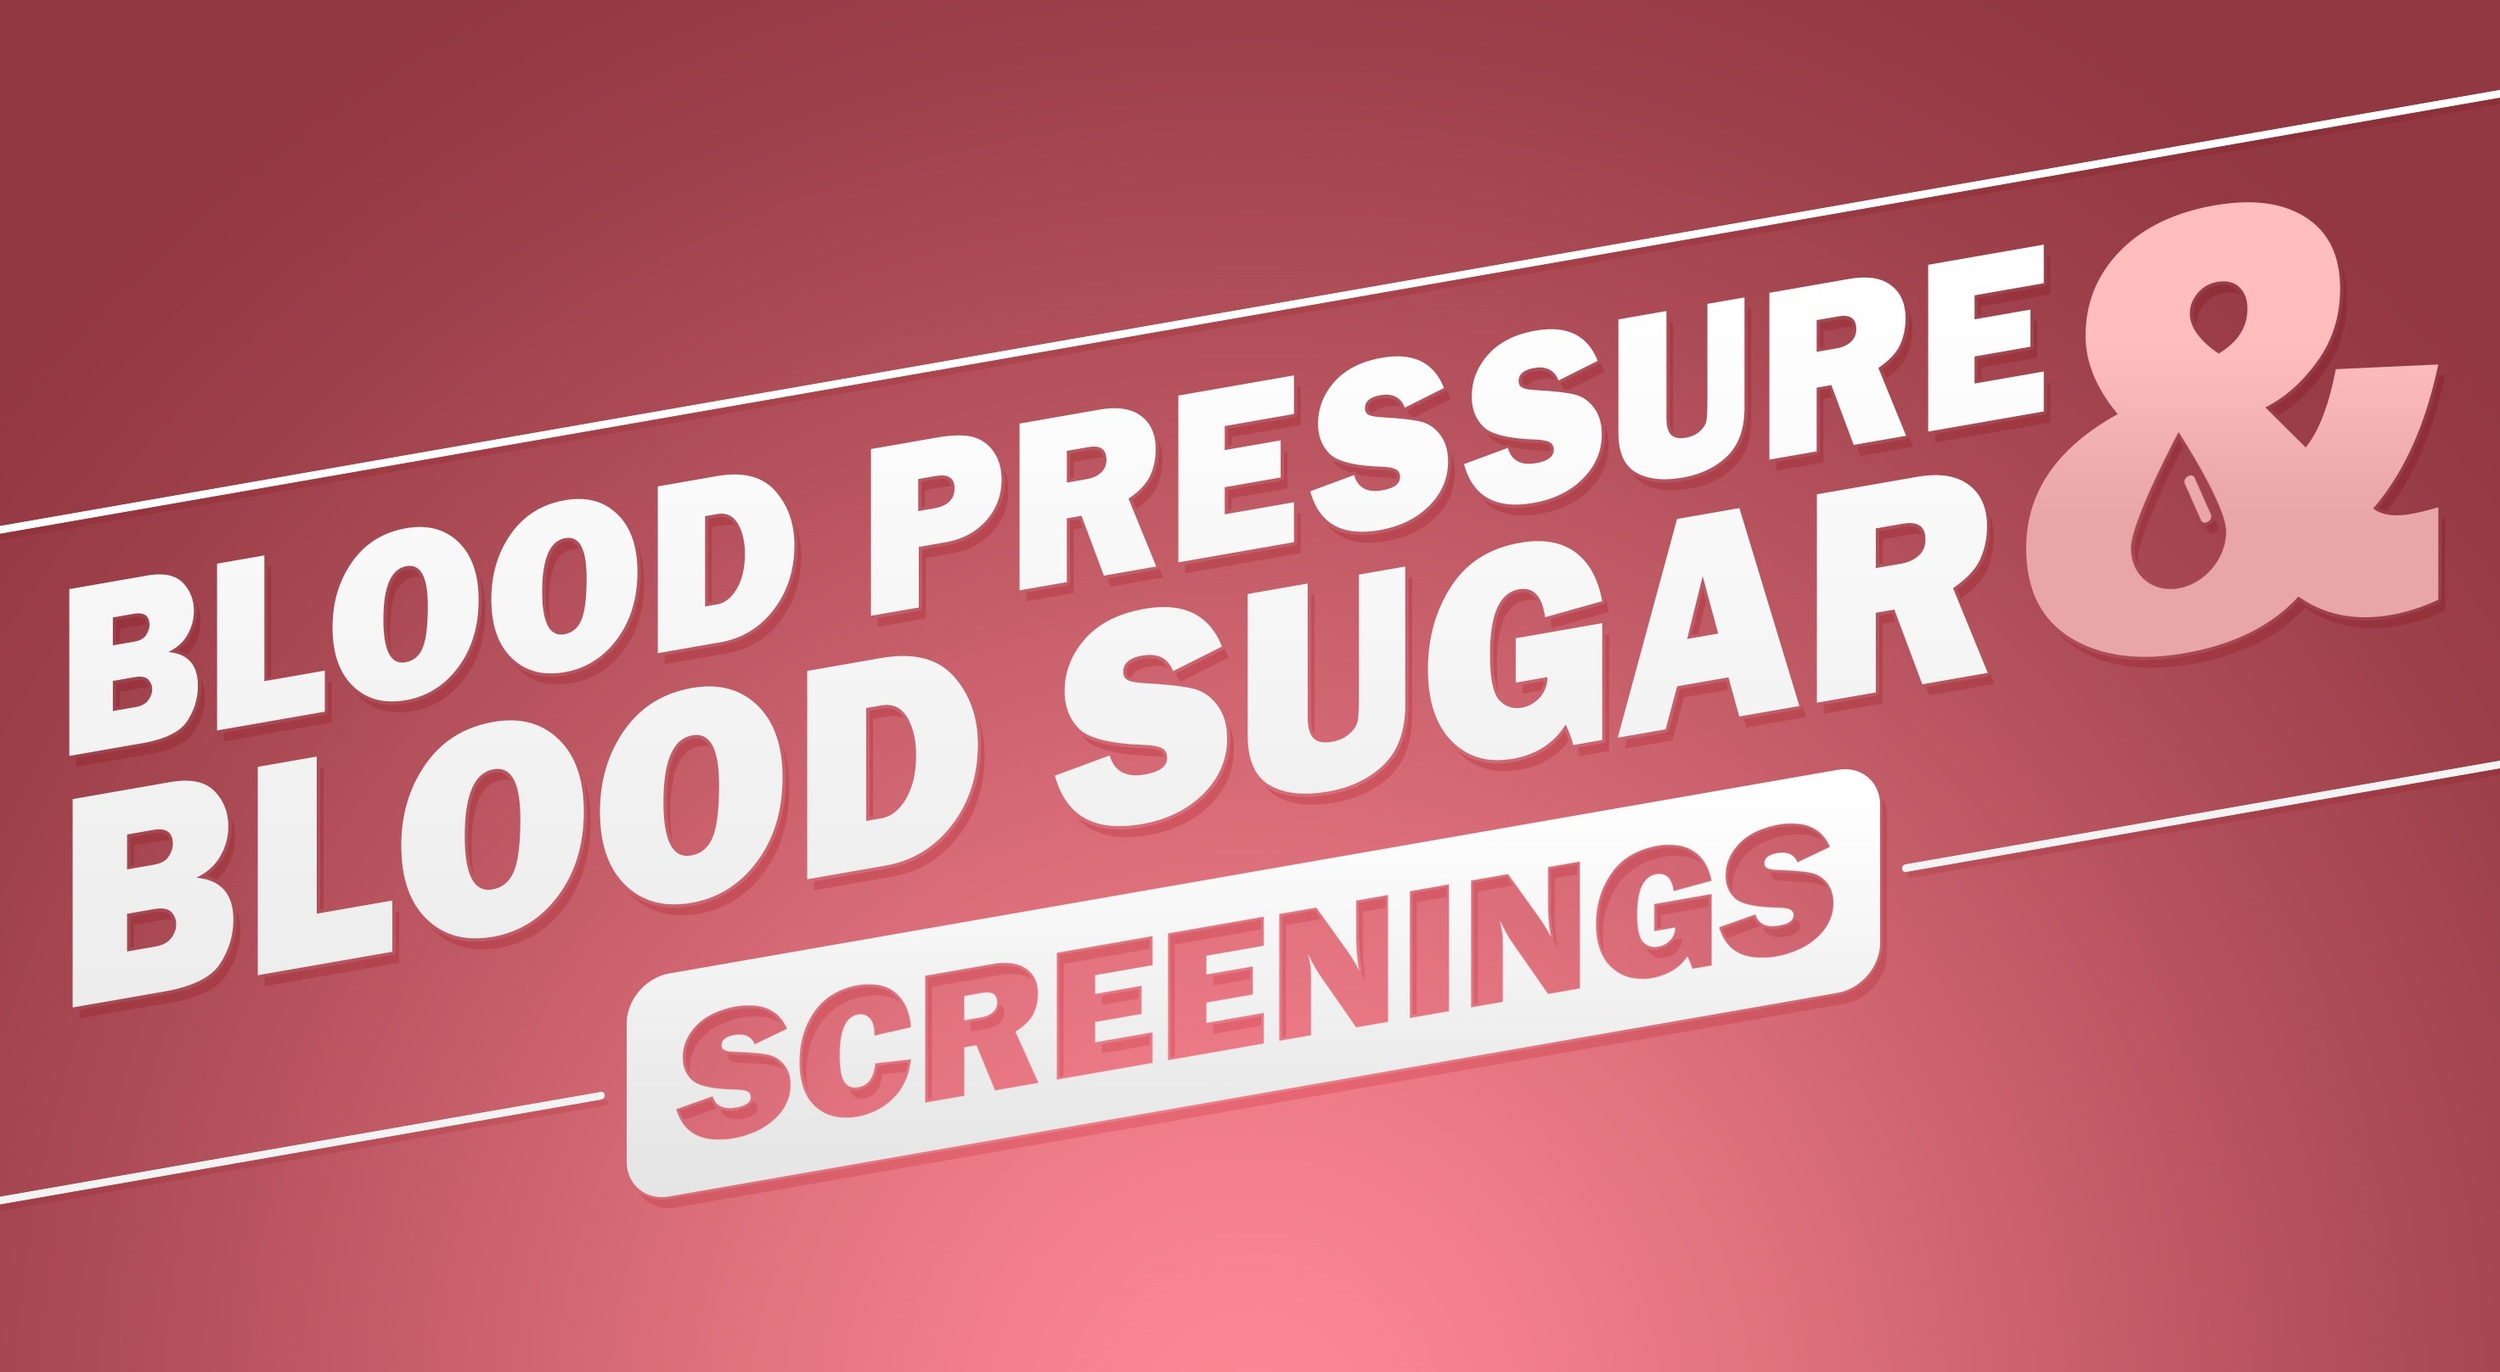 Blood Pressure & Blood Sugar Screenings banner